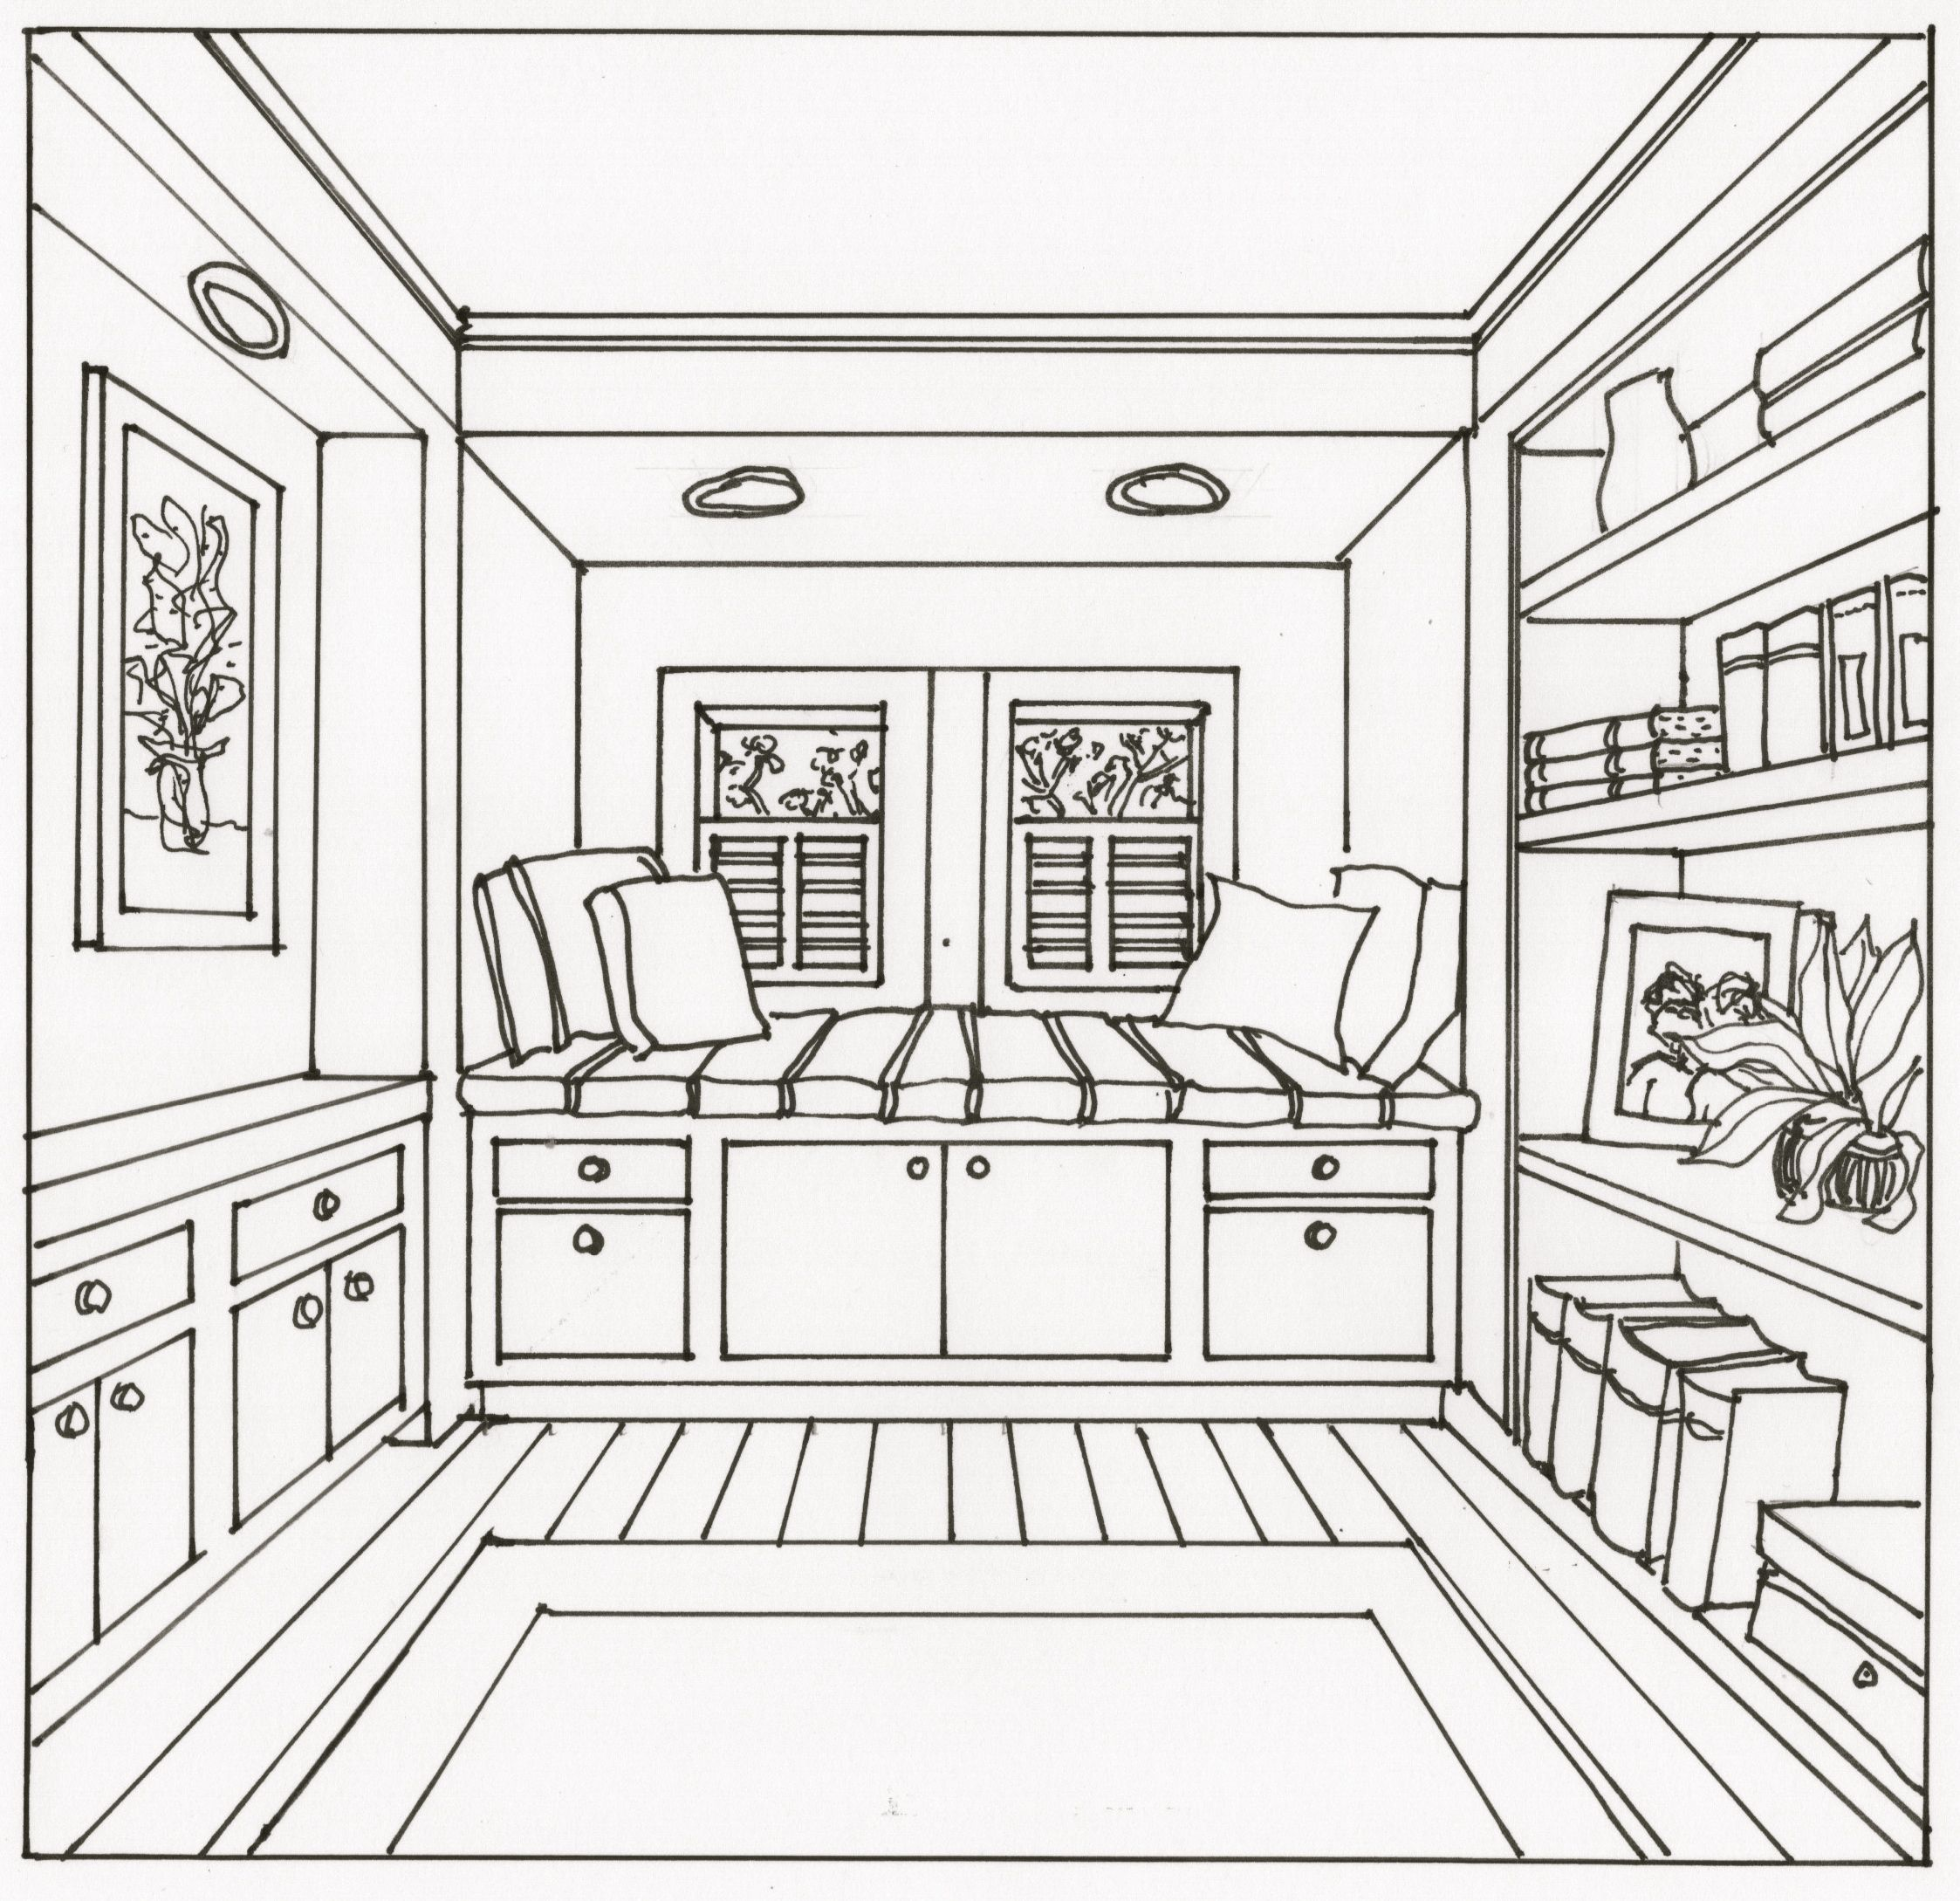 Dining room perspective drawing - I Am Always Looking For Techniques That Are Easy And Fast For Drawing One Point Perspective Drawingone Point Perspective Roomdrawing